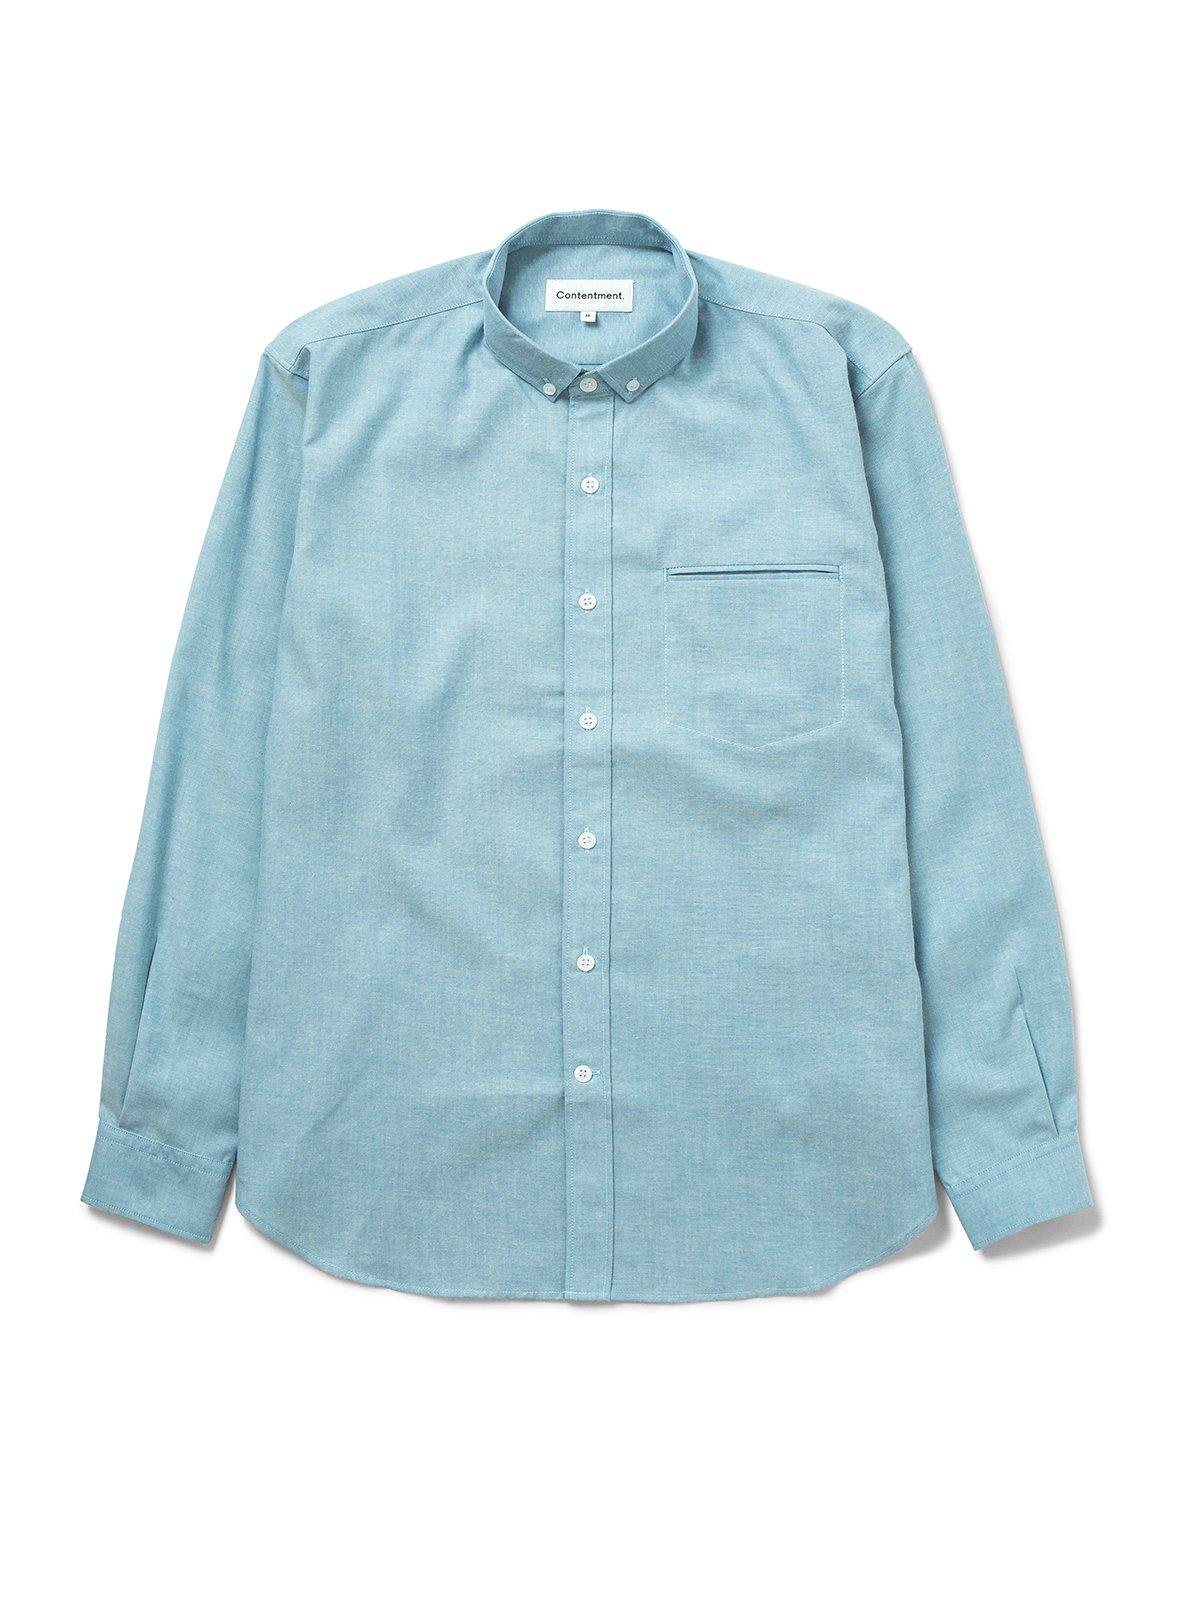 Contentment. Jetted Oxford Light Blue Shirt - MORE by Morello Indonesia